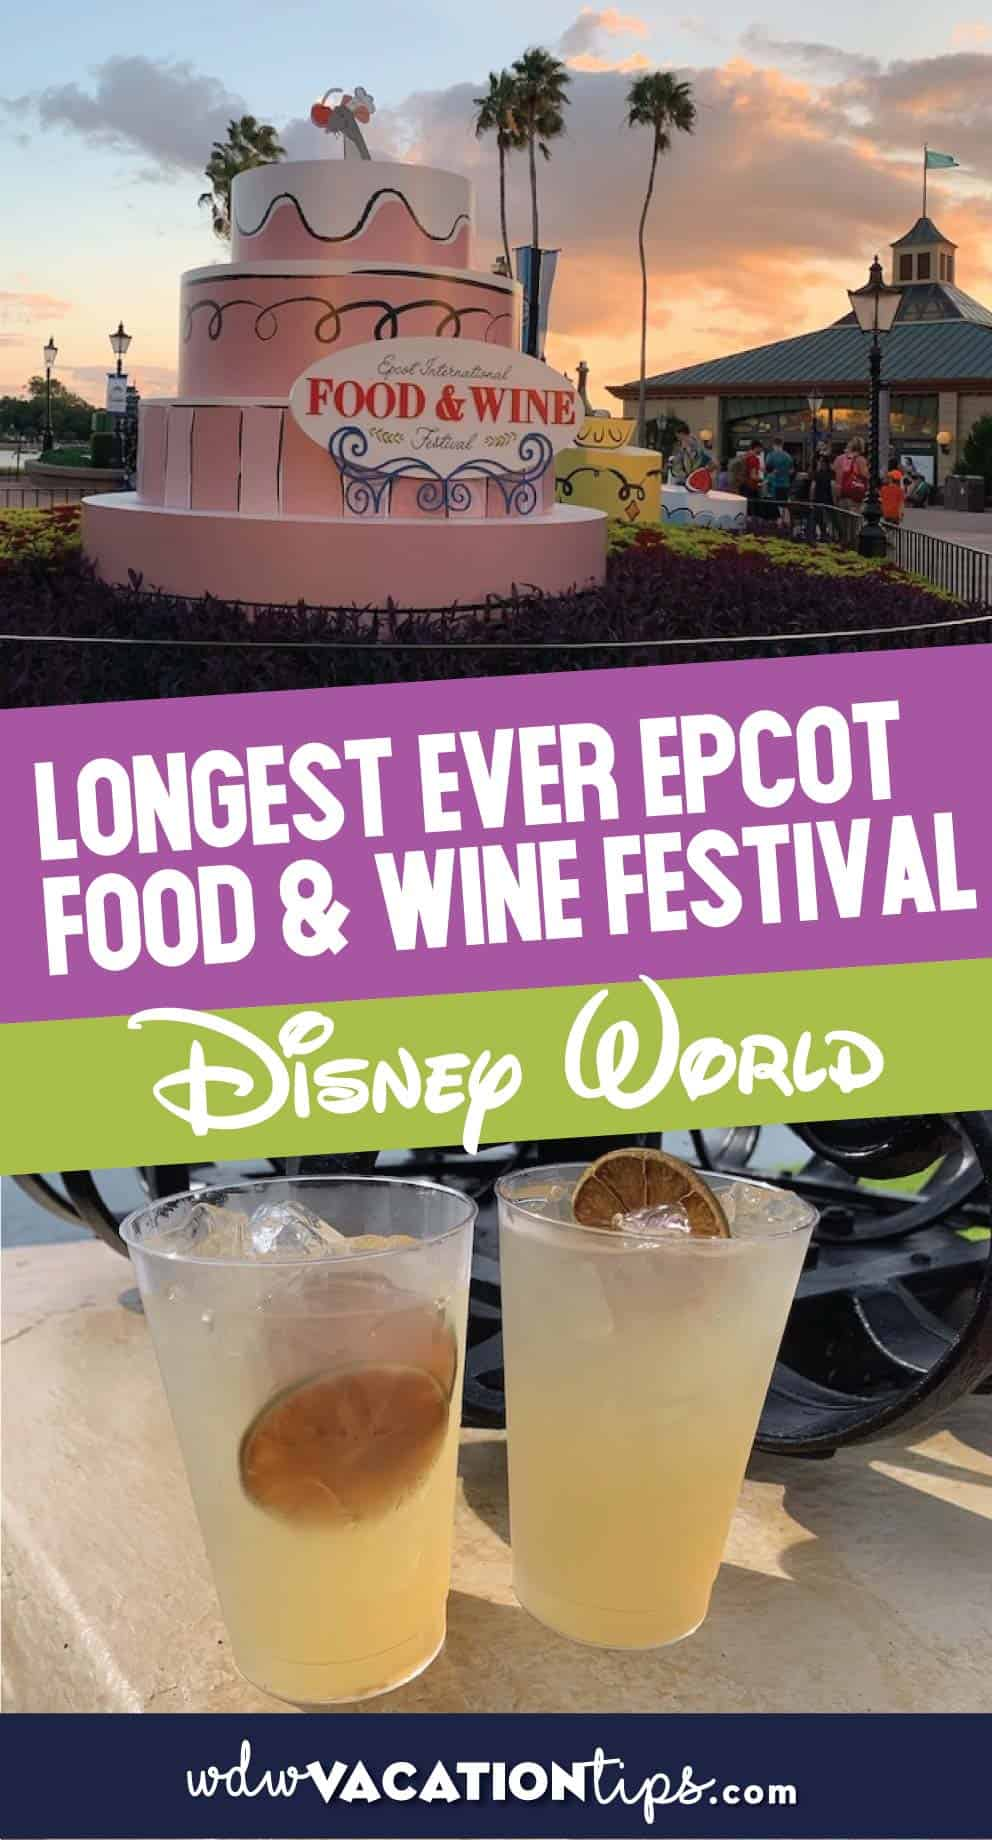 Longest Food and Wine Festival